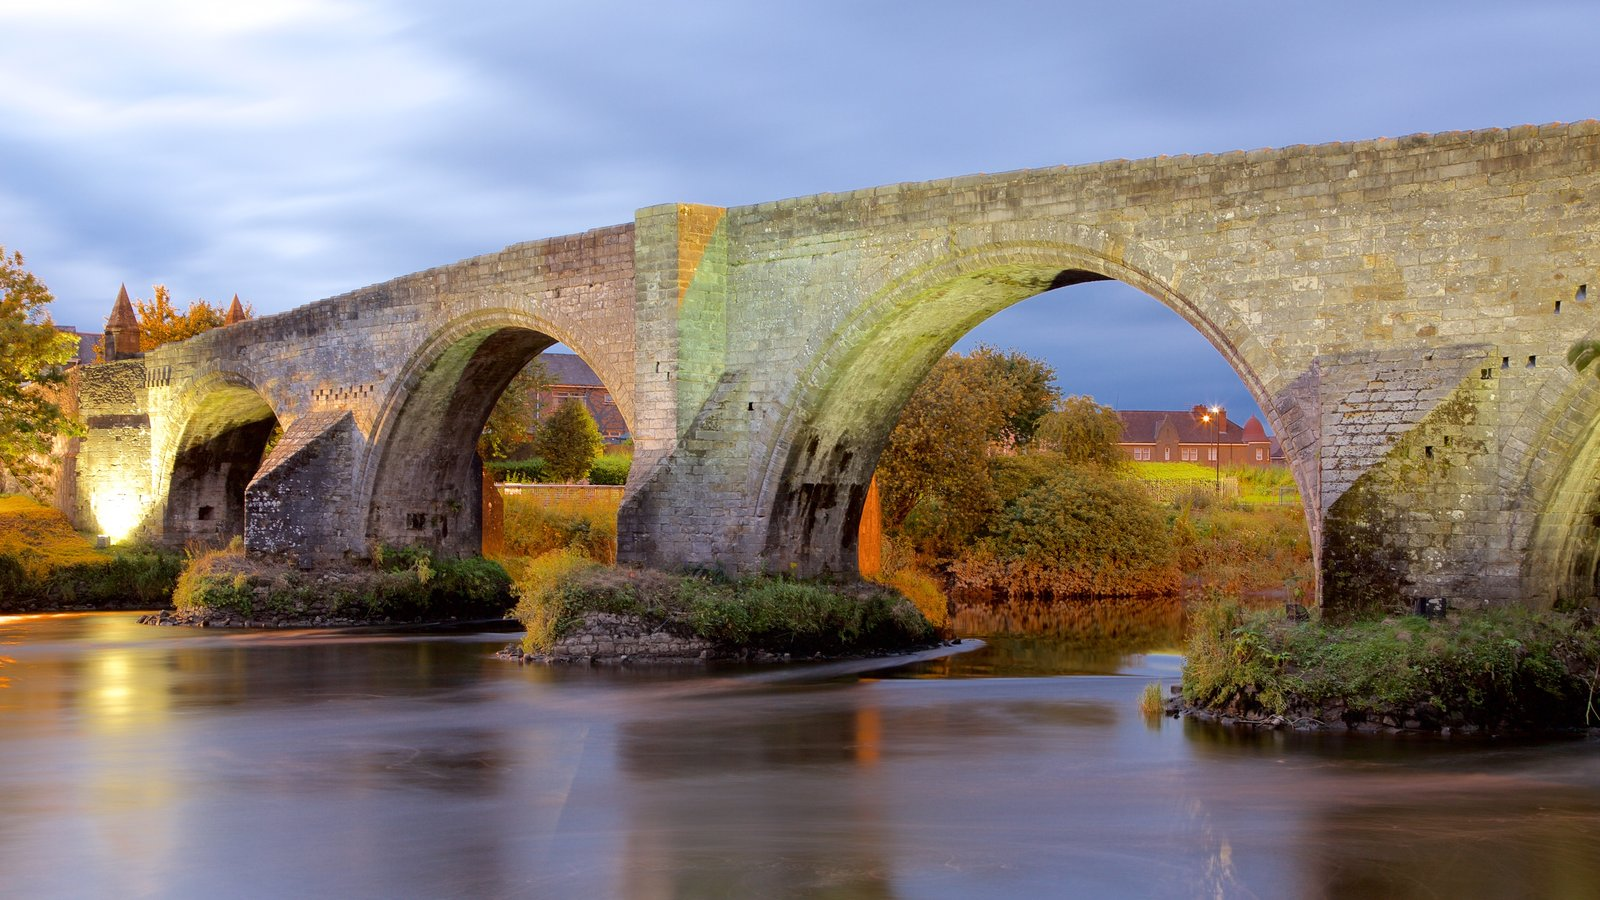 Stirling showing a river or creek, a bridge and heritage elements